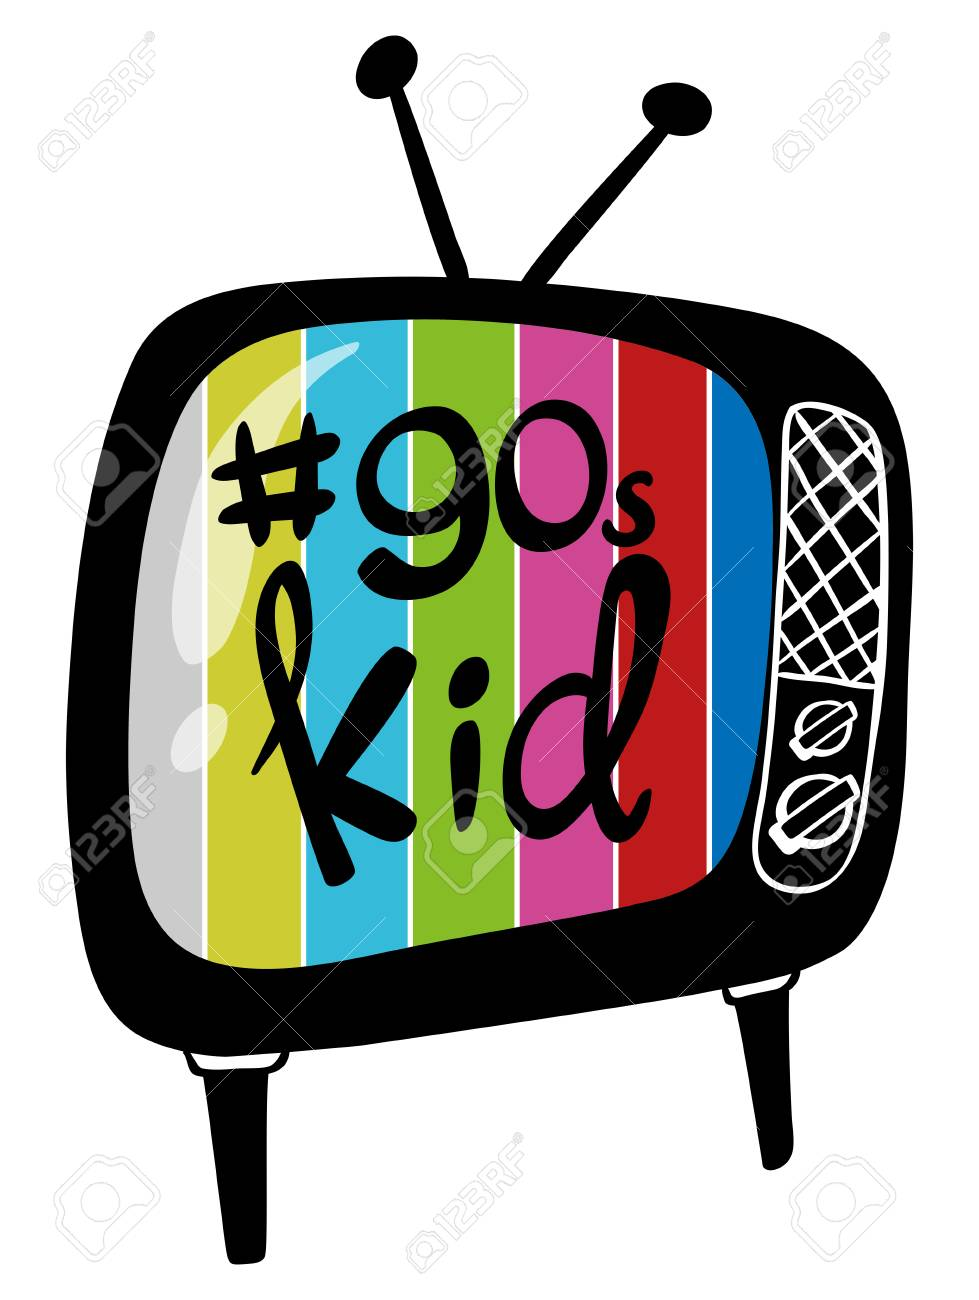 Color television with 90s kid on it illustration.